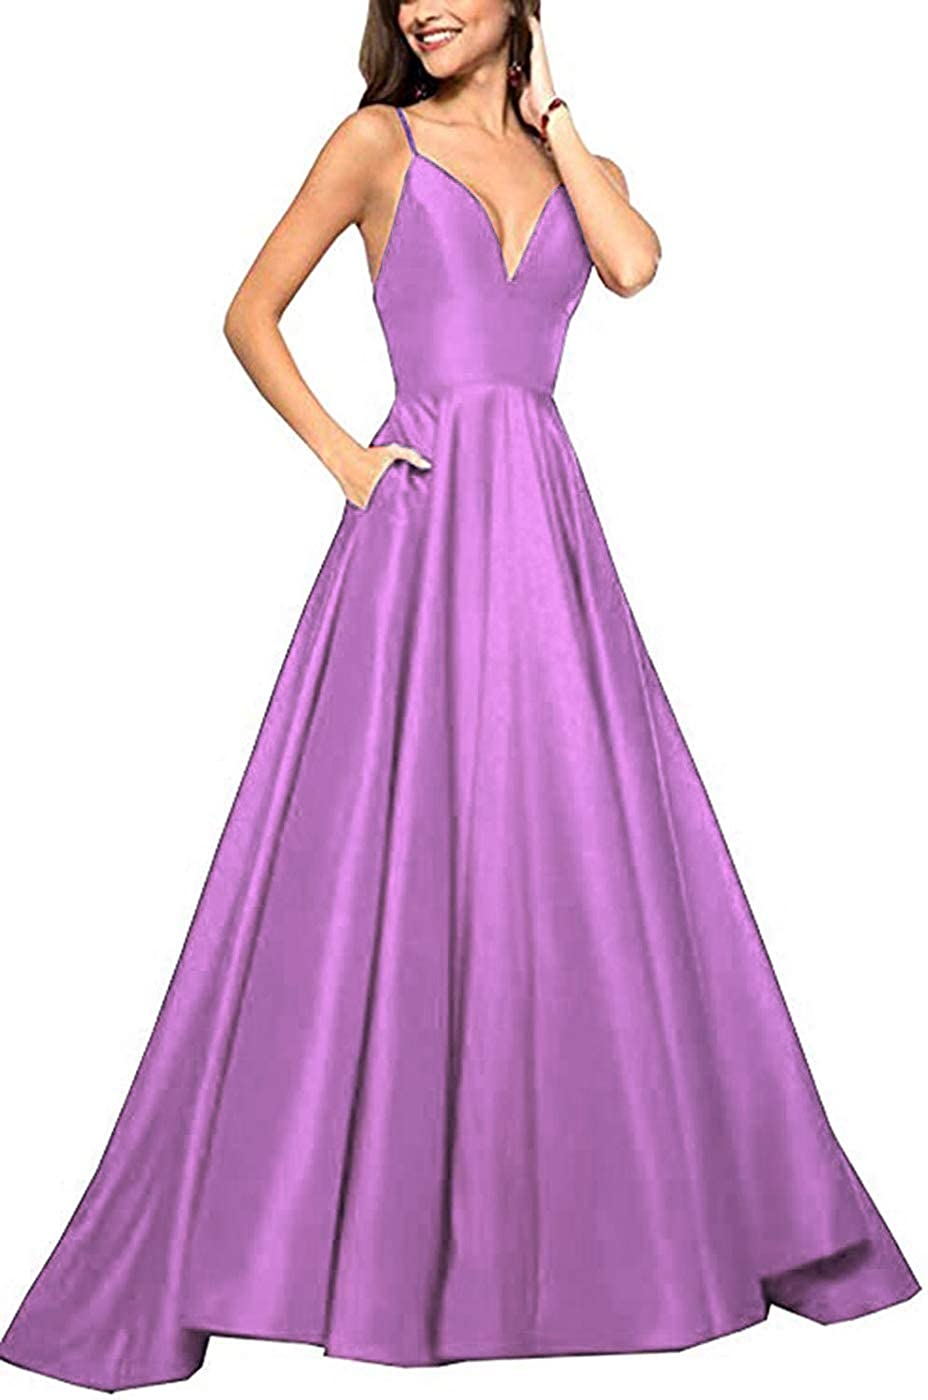 Begonia Tmaoomo Long Prom Dresses for Women 2019 Spaghetti Strap Evening Ball Gowns with Pockets